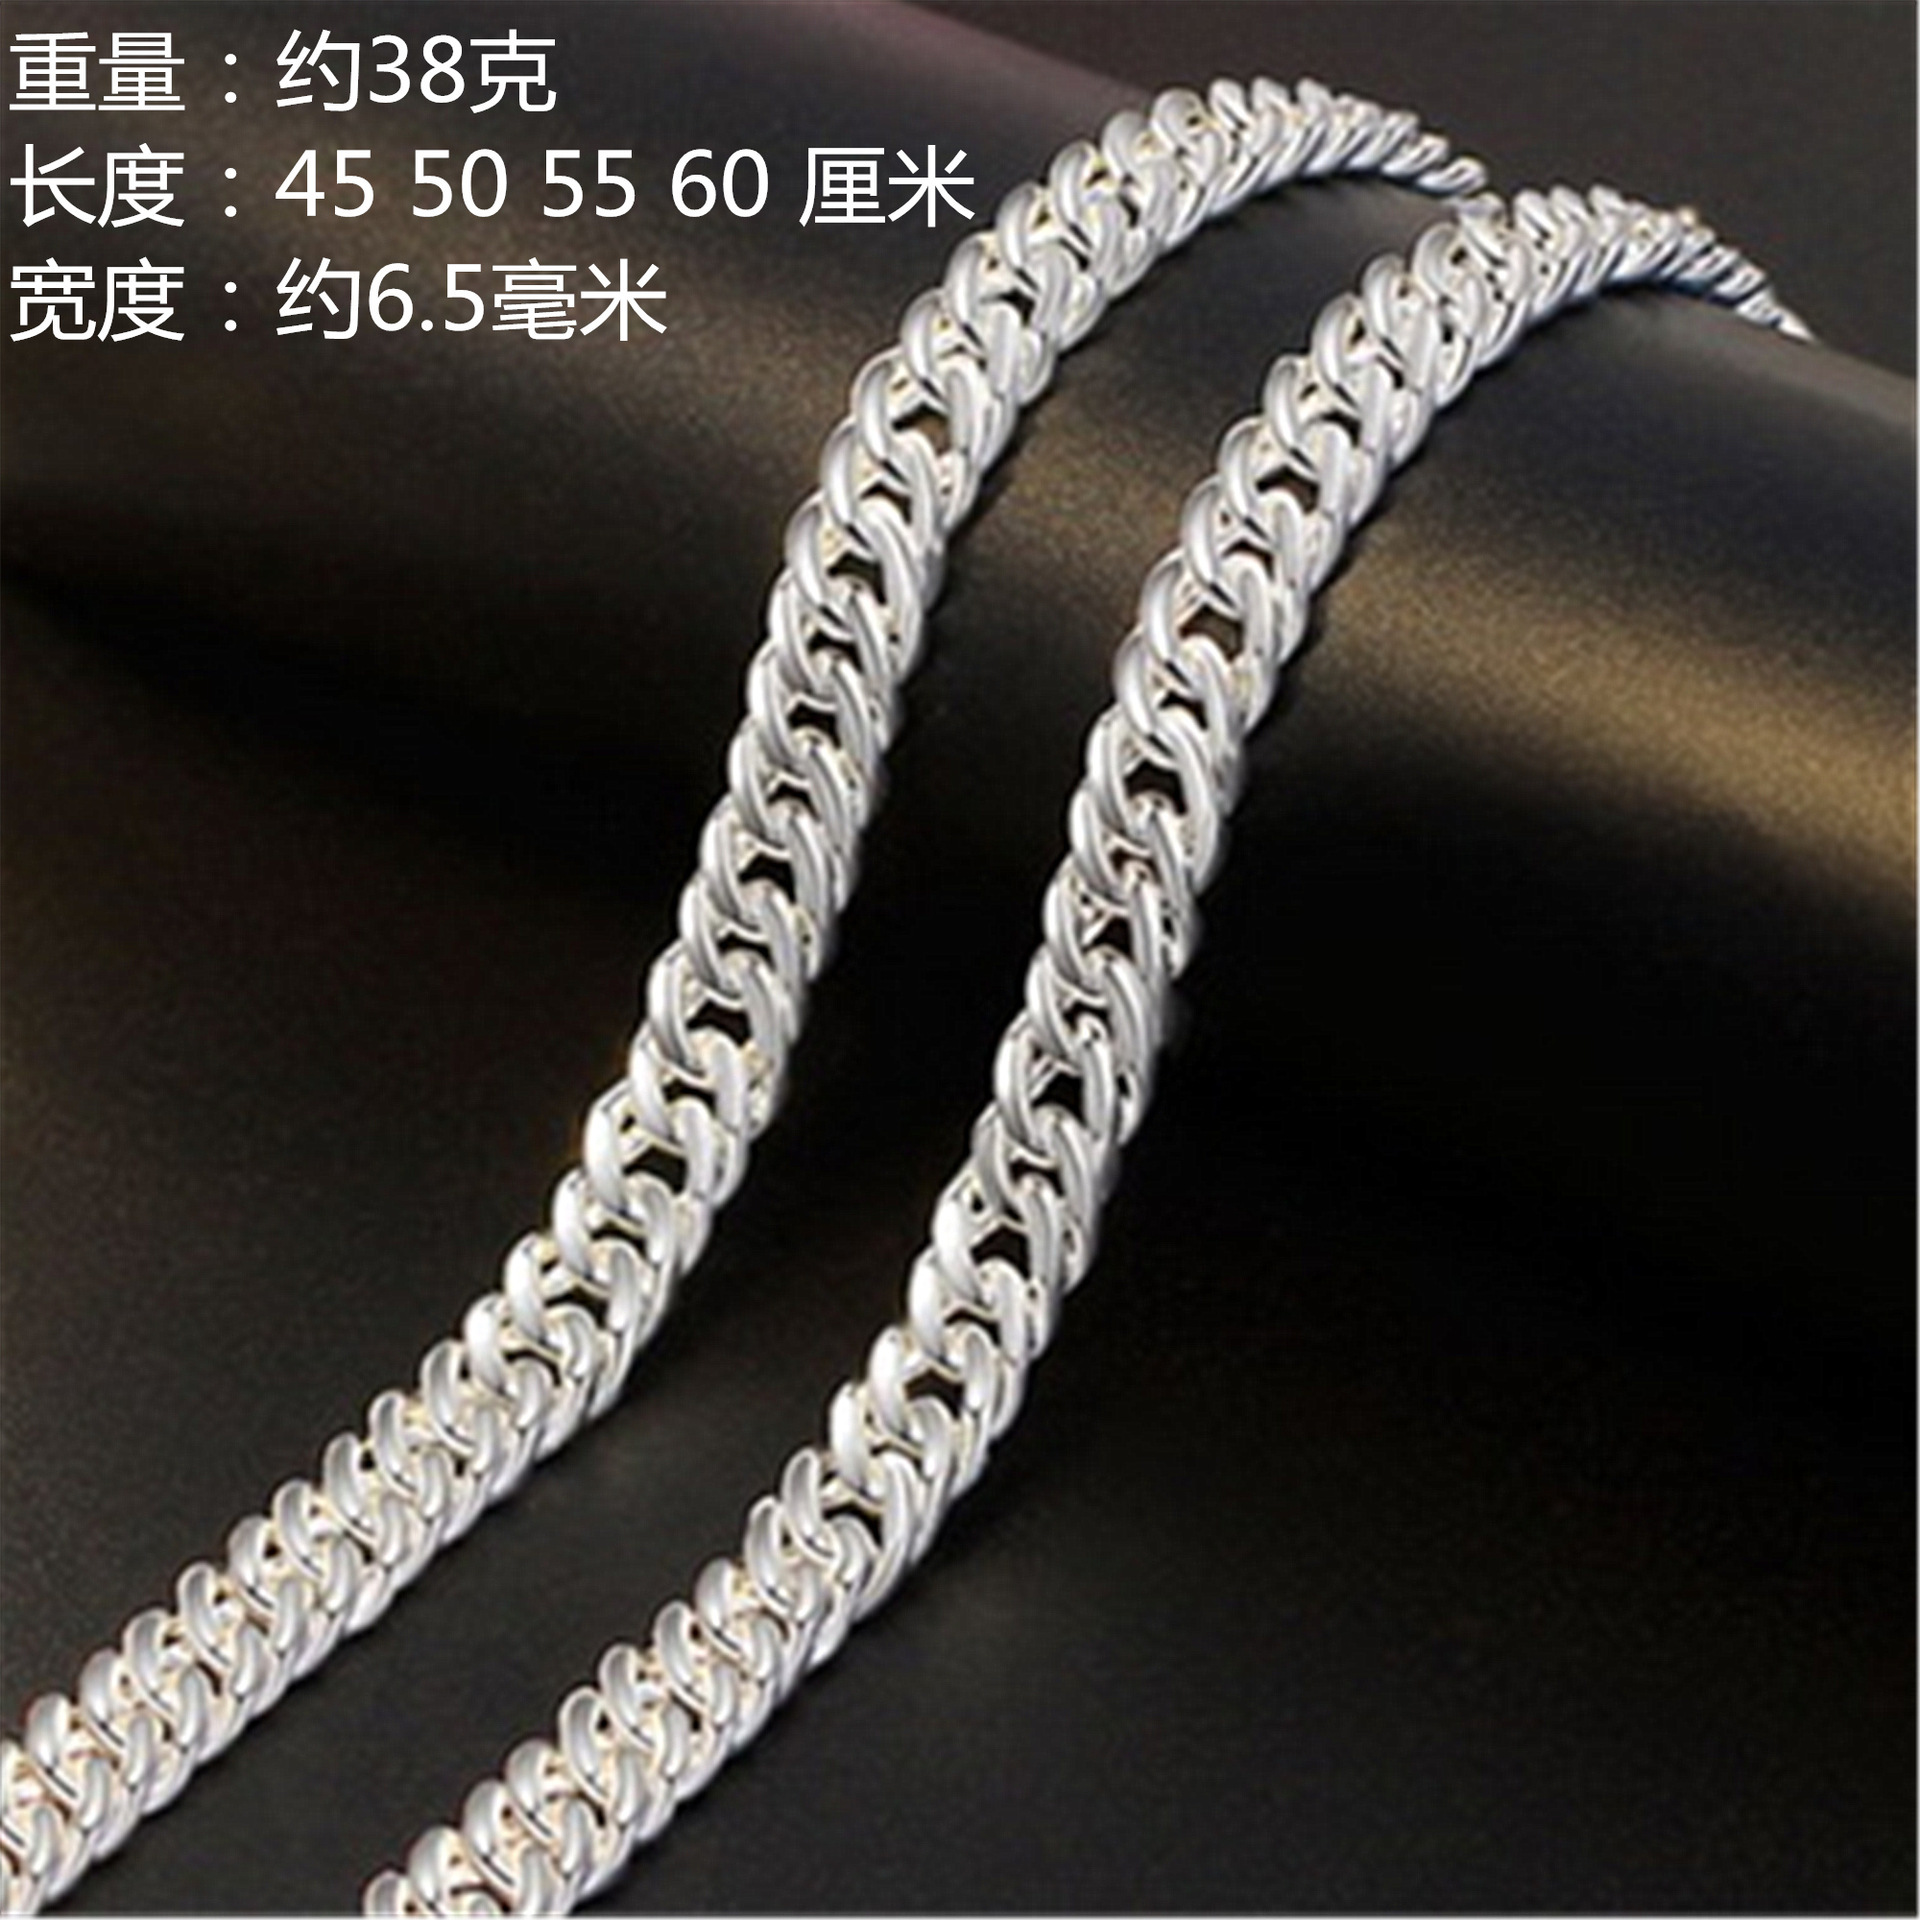 White Copper Silver-plated Necklace for Hip-hop Style Fashion